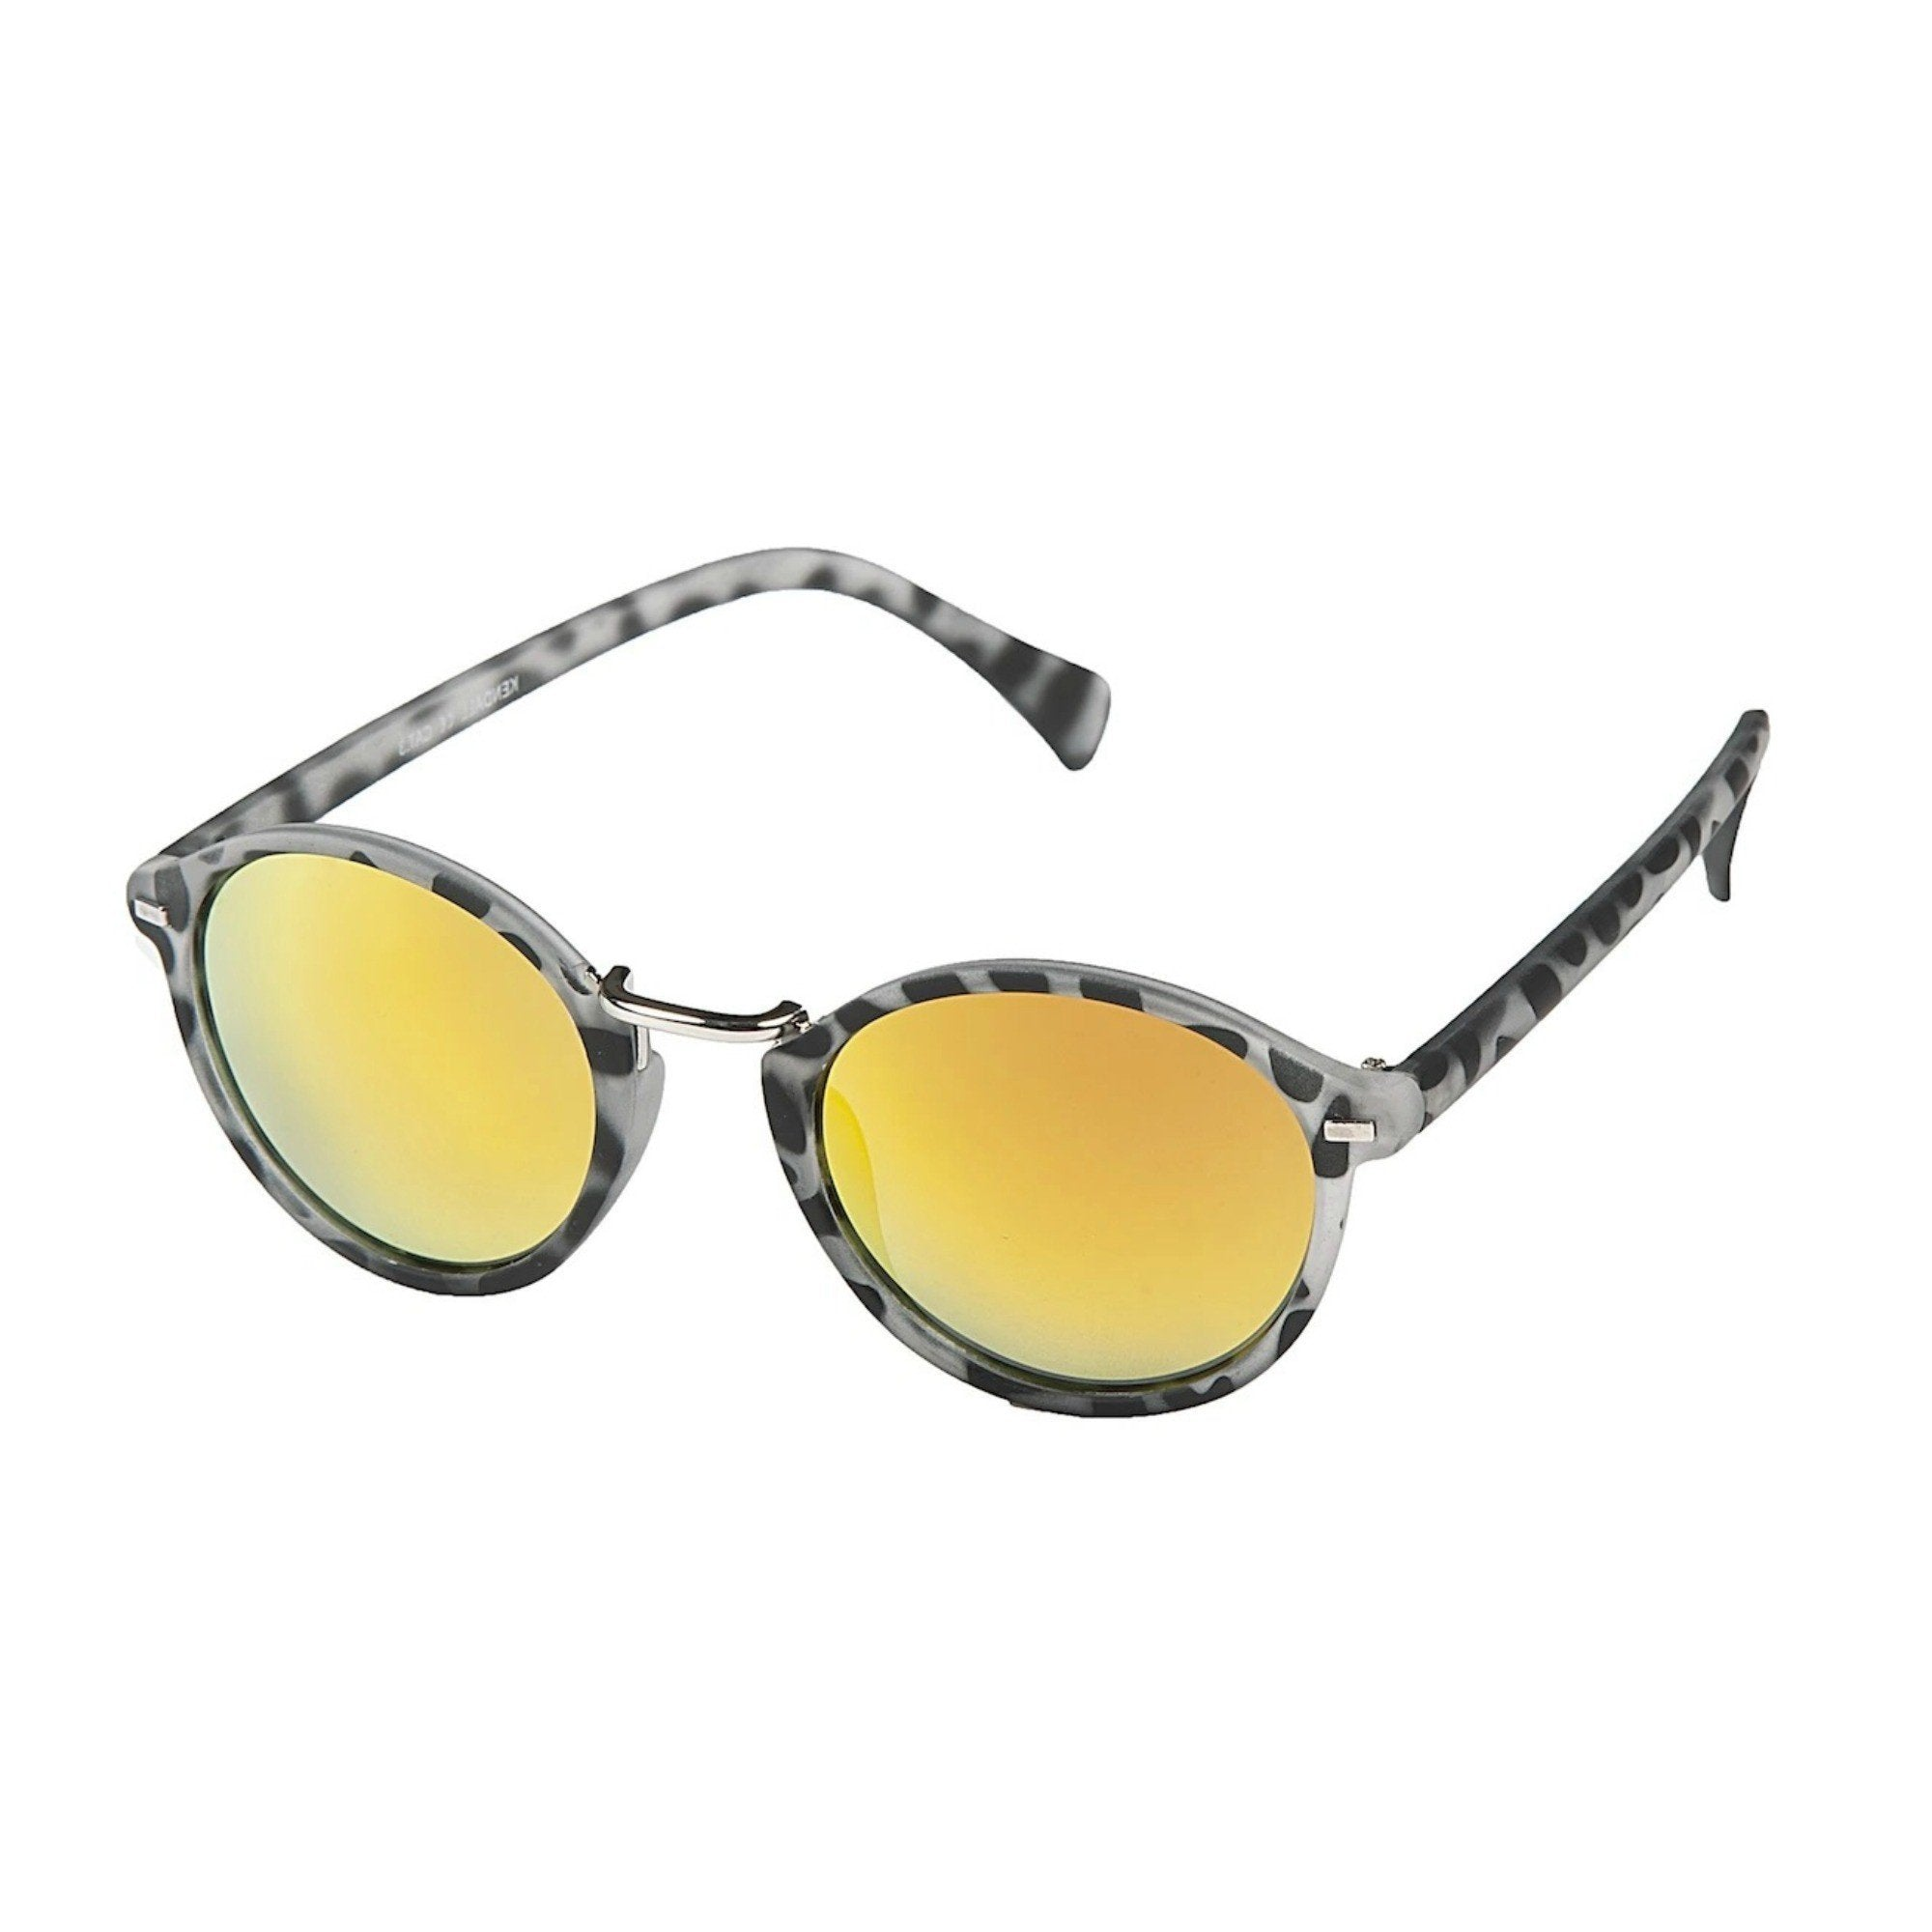 EYELEVEL Round Mirrored Sunglasses - Minimum Mouse